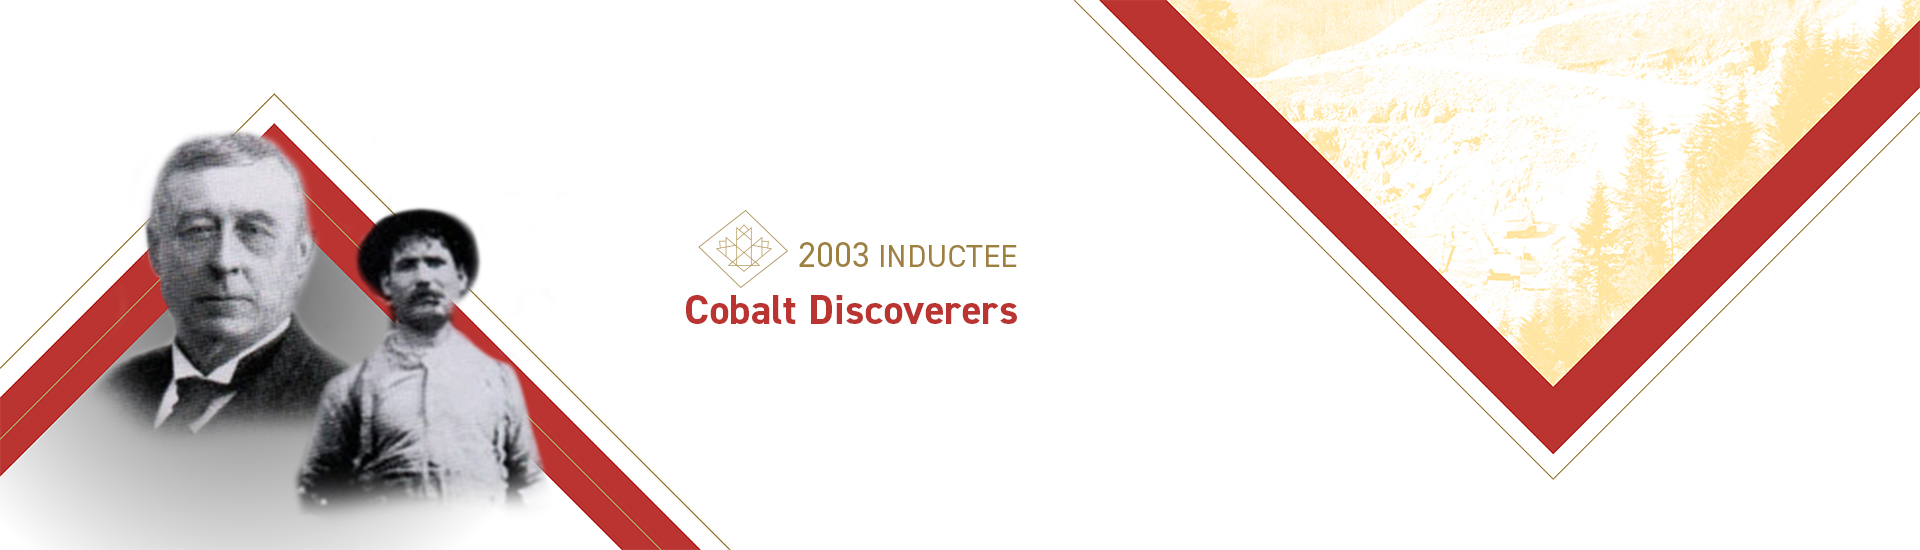 The Cobalt Discoverers